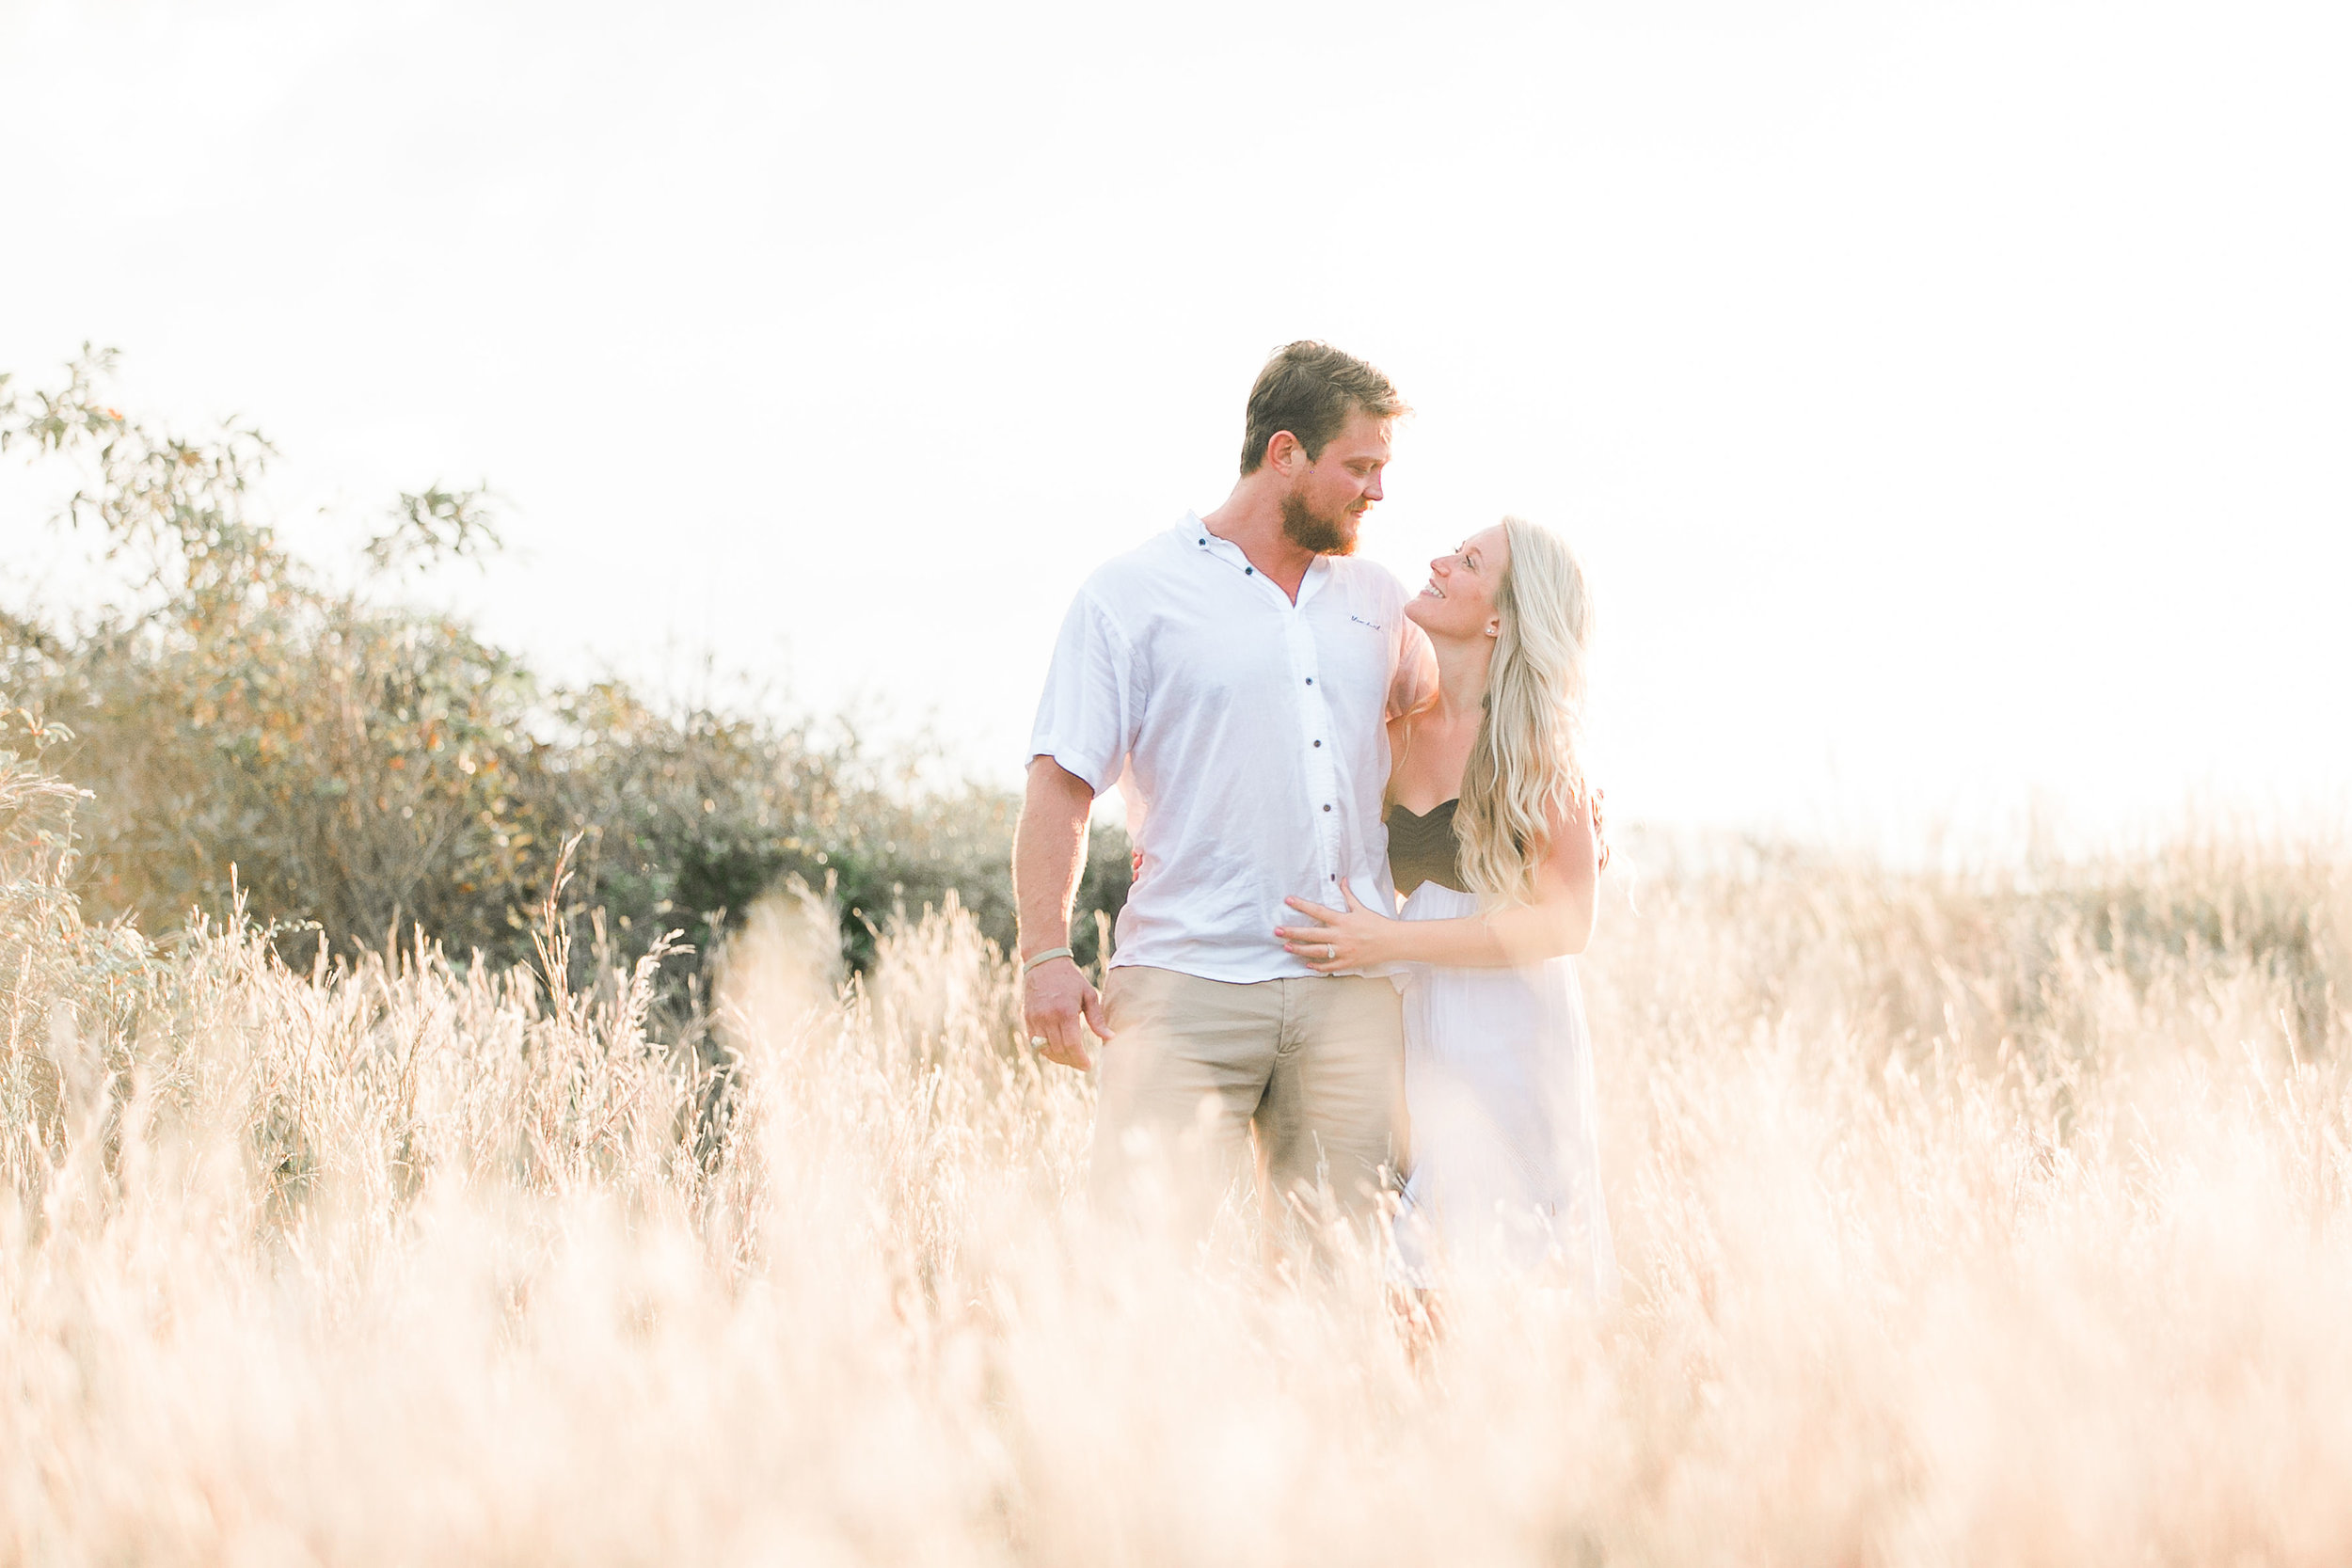 Chelsea&Jordan_Engaged-98.jpg